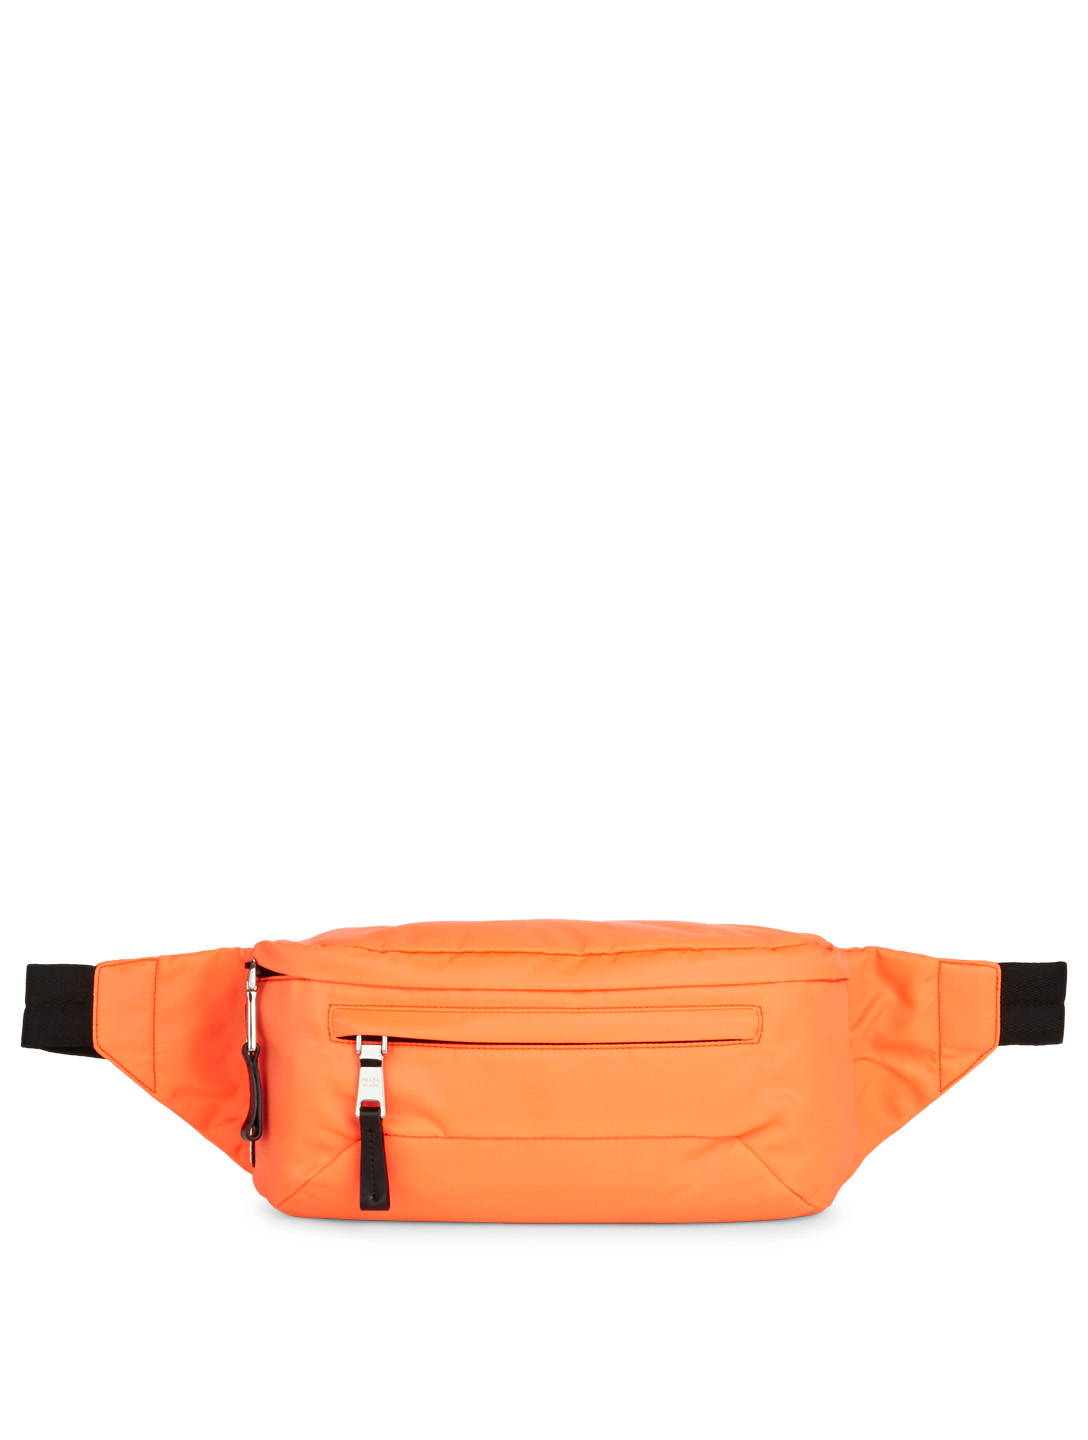 PRADA Nylon Logo Belt Bag Men's Orange